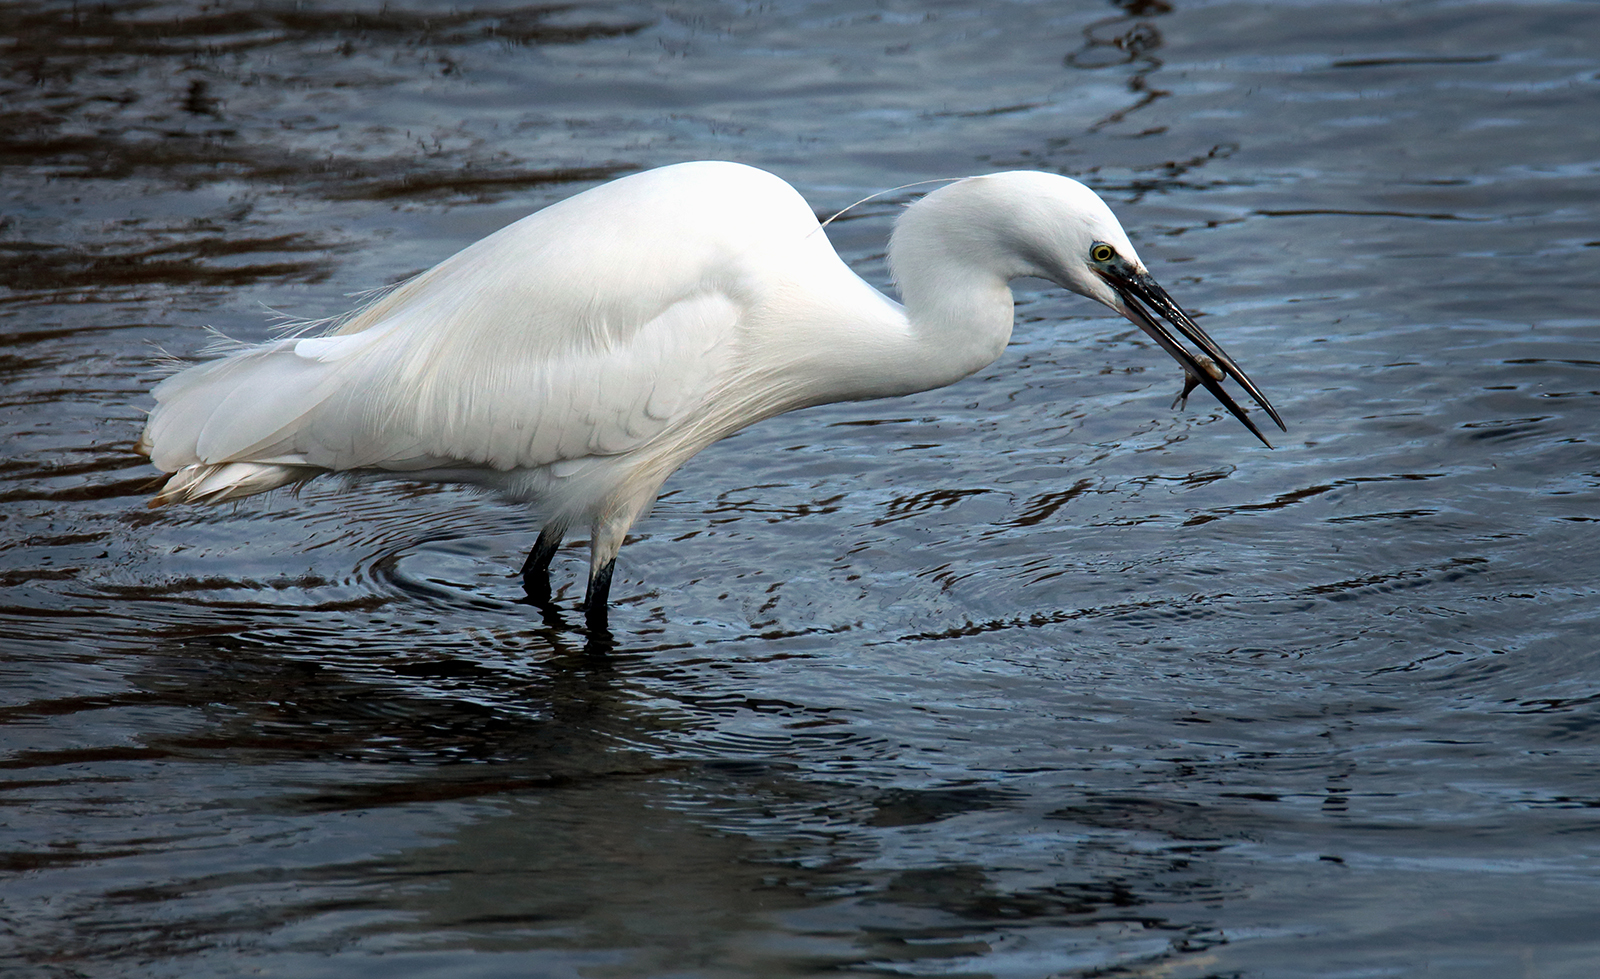 Graeme Blumire_Egret with Catch_None